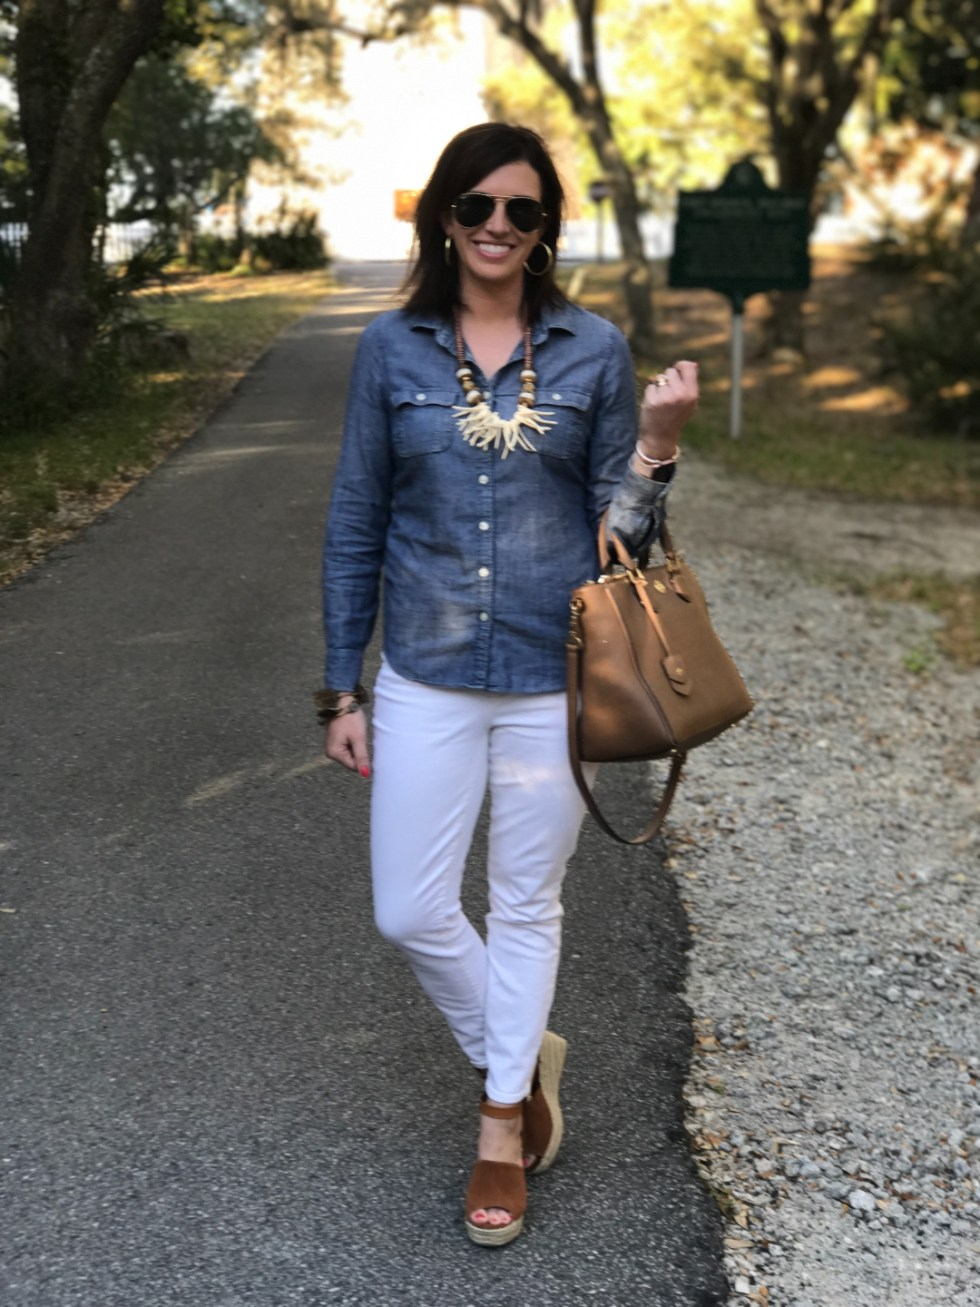 Building Your Spring Wardrobe Capsule - I'm Fixin' To - @mbg0112 | | Spring wardrobe capsule essentials featured by top US fashion blog, I'm Fixin' To: denim button up shirt and white jeans